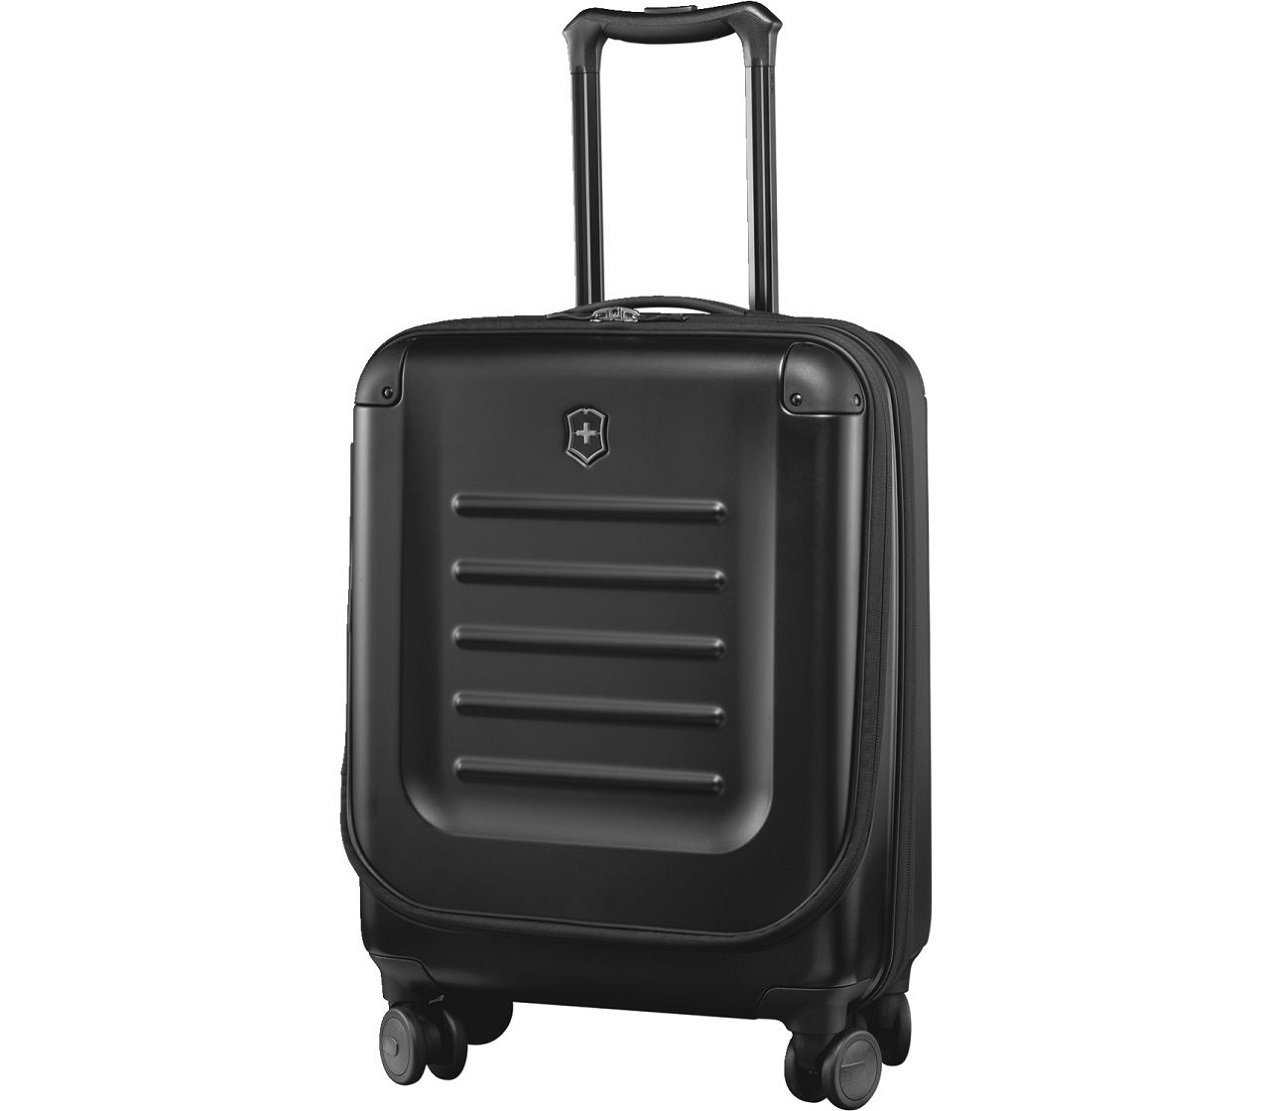 """Victorinox Spectra 2.0 Hardside Spinner Suitcase, Black, Expandable Carry-On, Global (21.7"""")"""